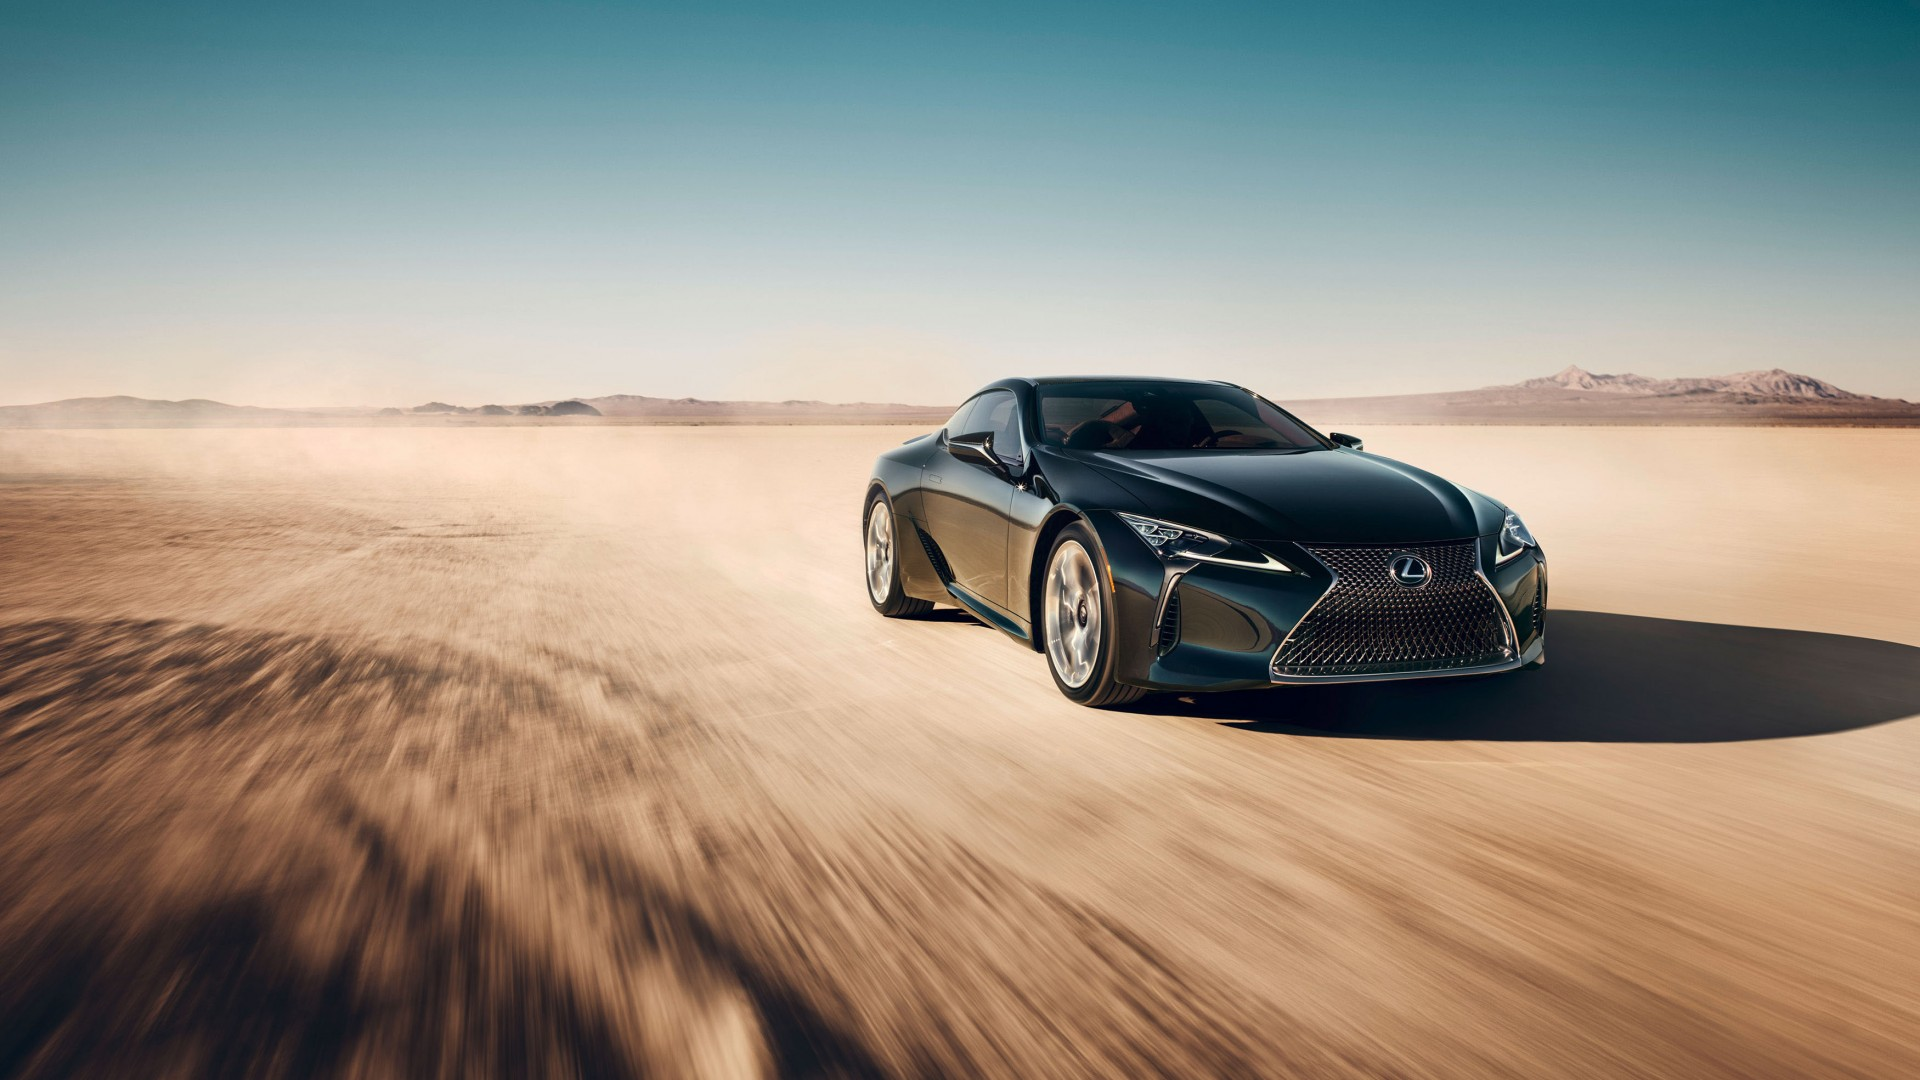 2018 Lexus LC 500 11 Wallpaper | HD Car Wallpapers | ID #8056